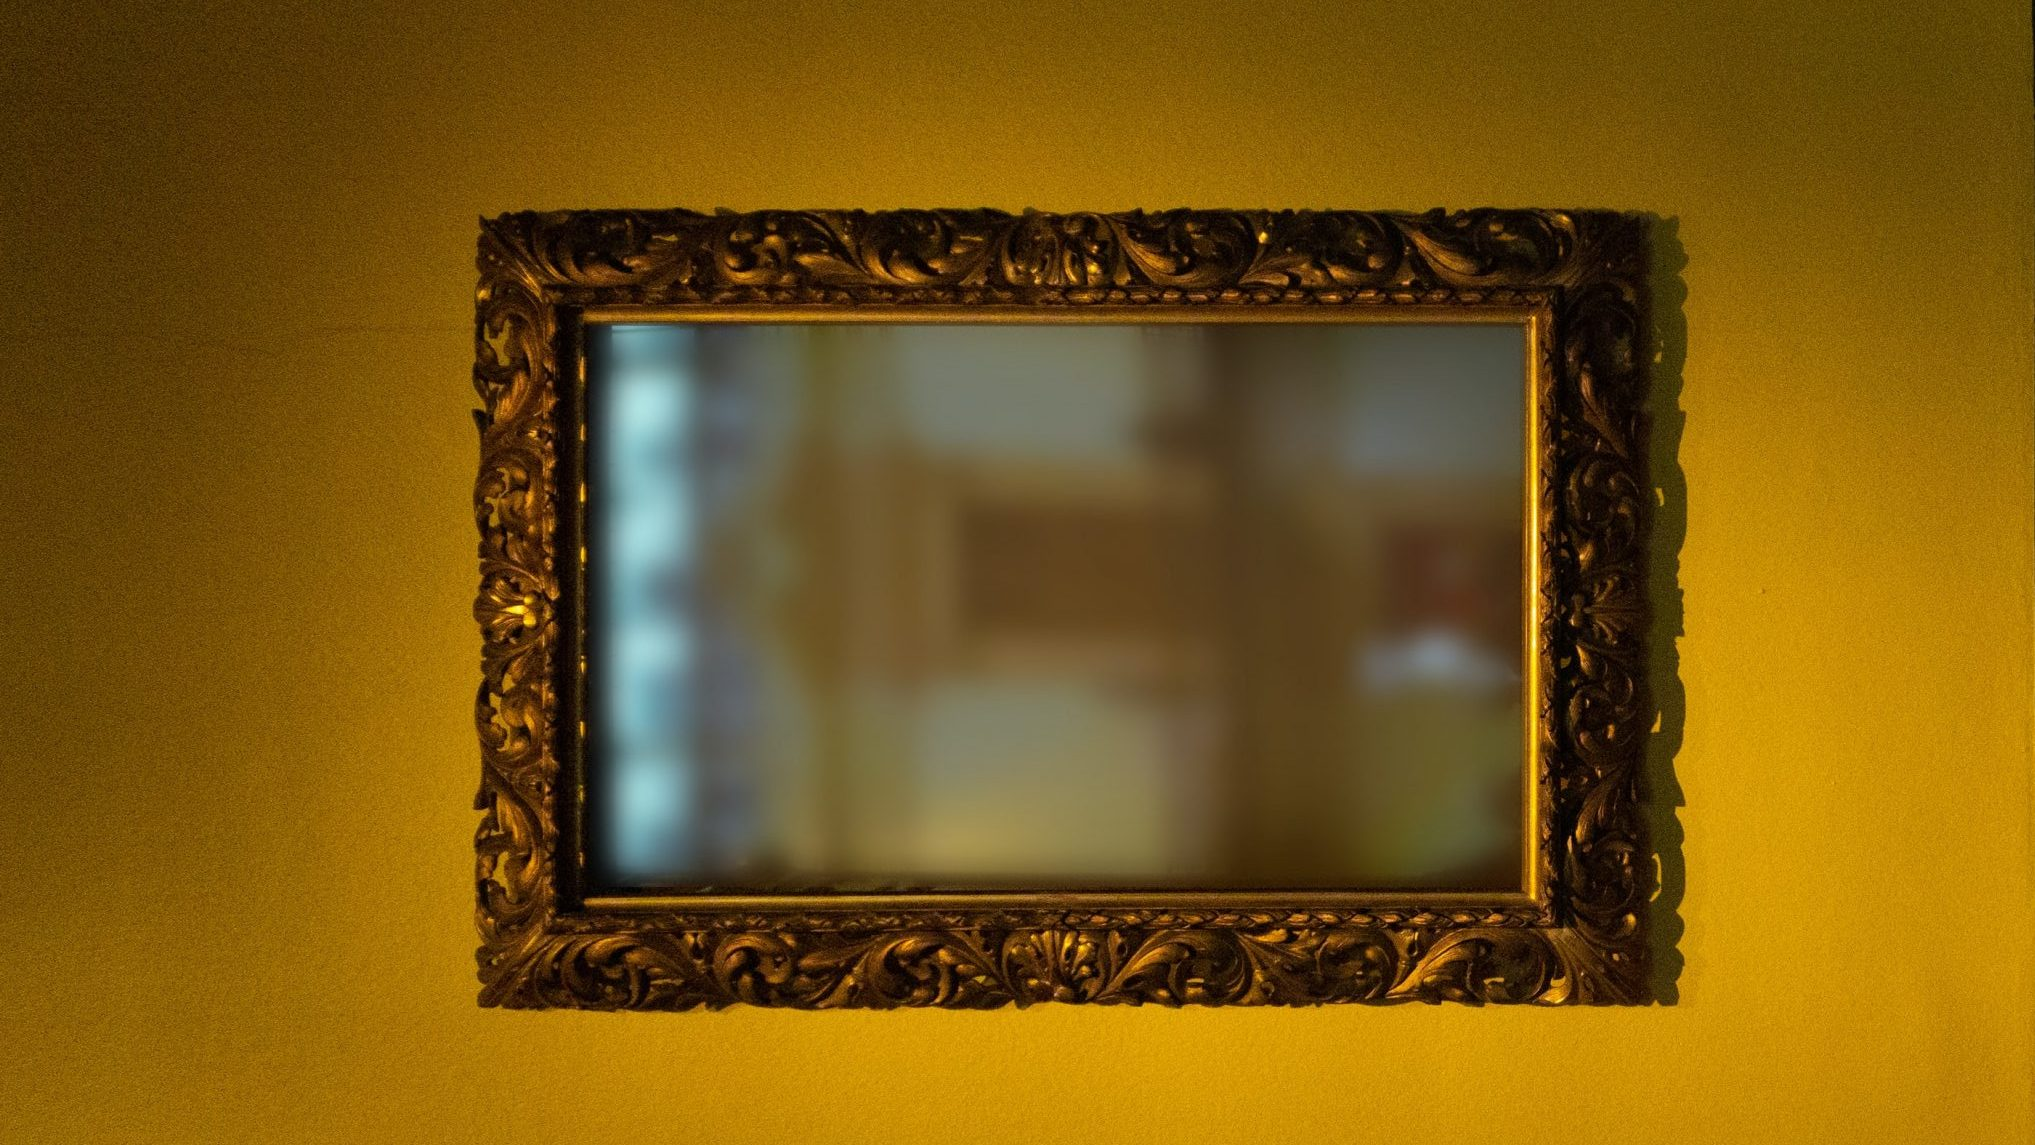 A framed mirror on a yellow gallery wall with a hazy reflection of a museum interior